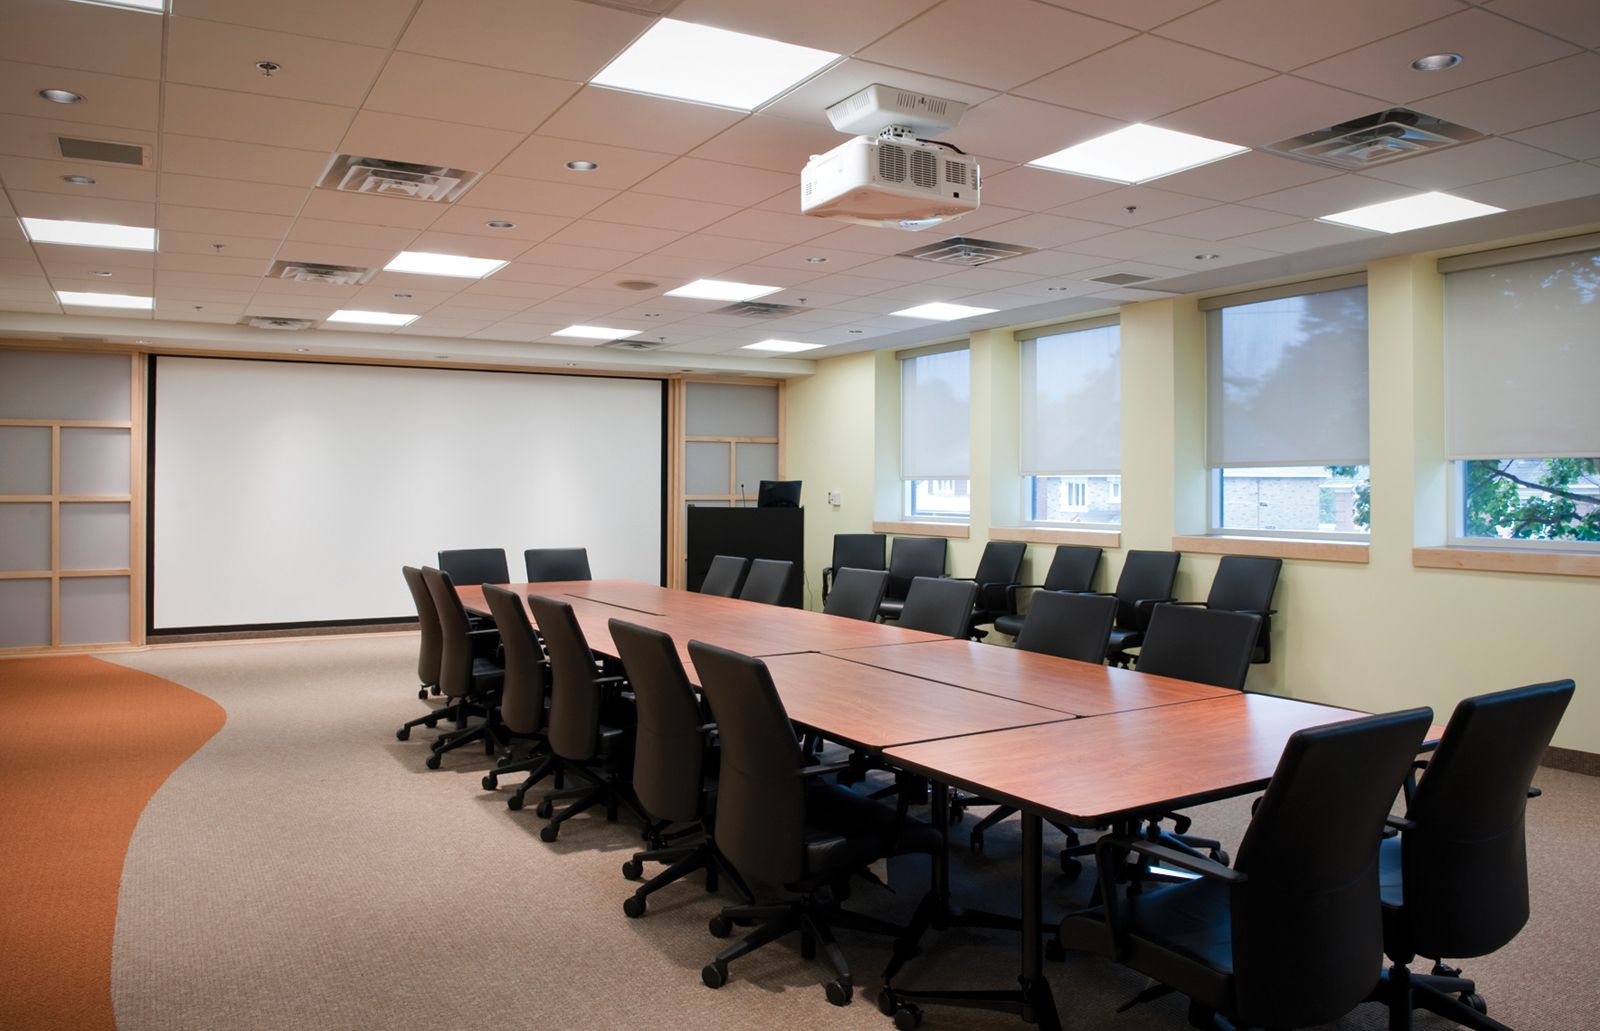 Good lighting conference rooms interior design ideas for for Meeting room interior design ideas